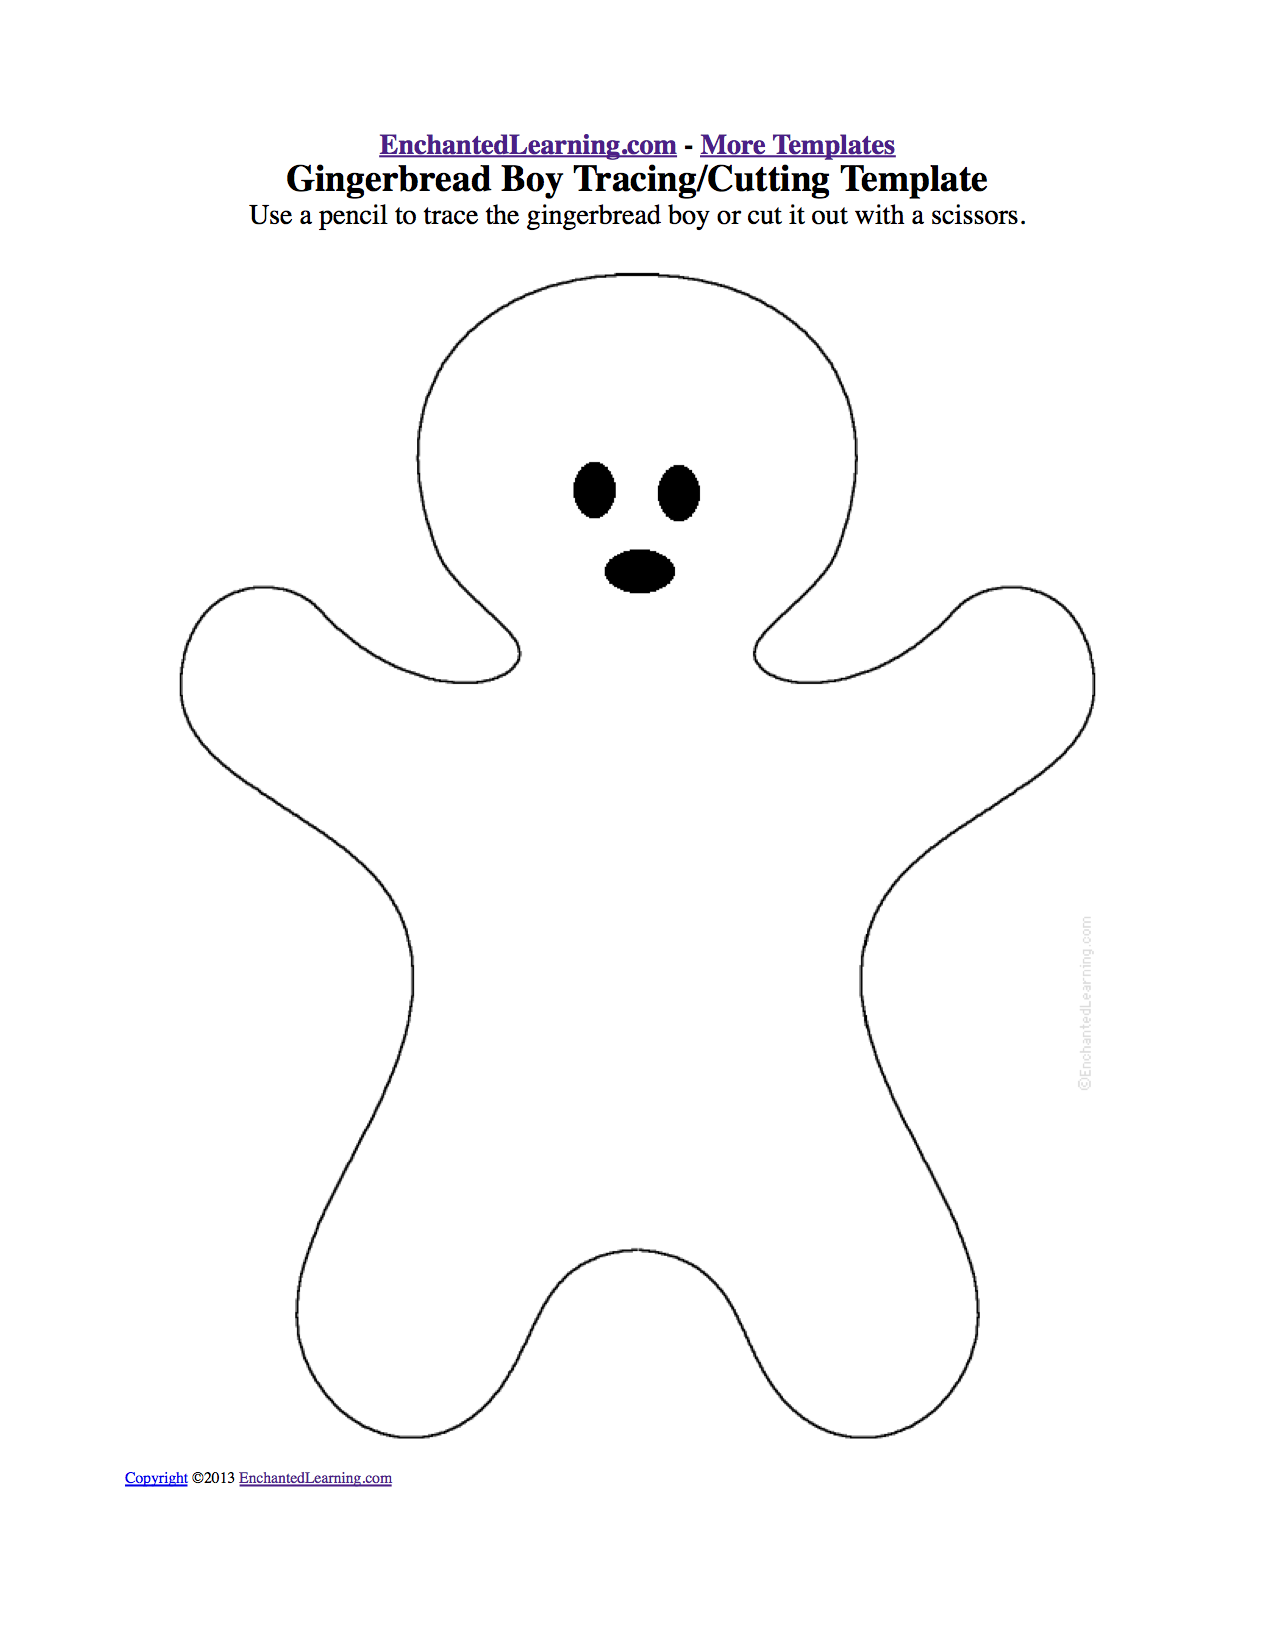 What goes together what doesn t belong fun worksheets and cut and - Trace Or Cut Out The Gingerbread Boy